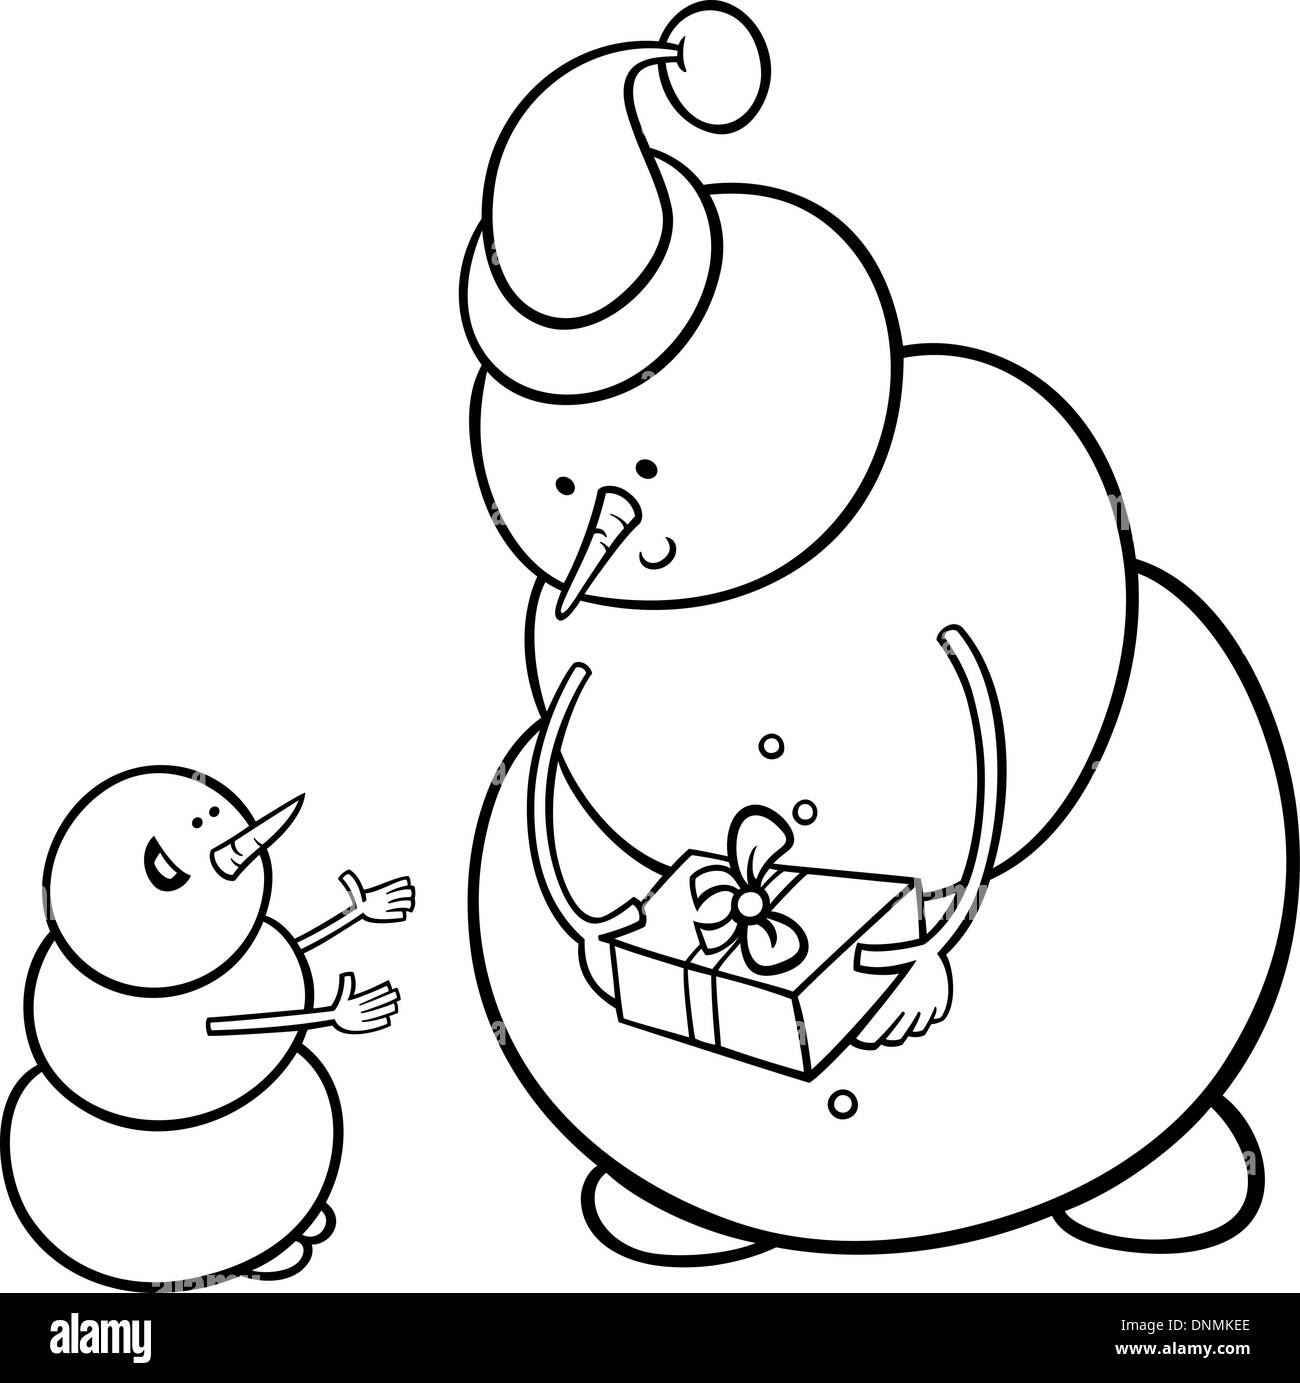 Black and White Cartoon Illustration of Snowman as Santa ...